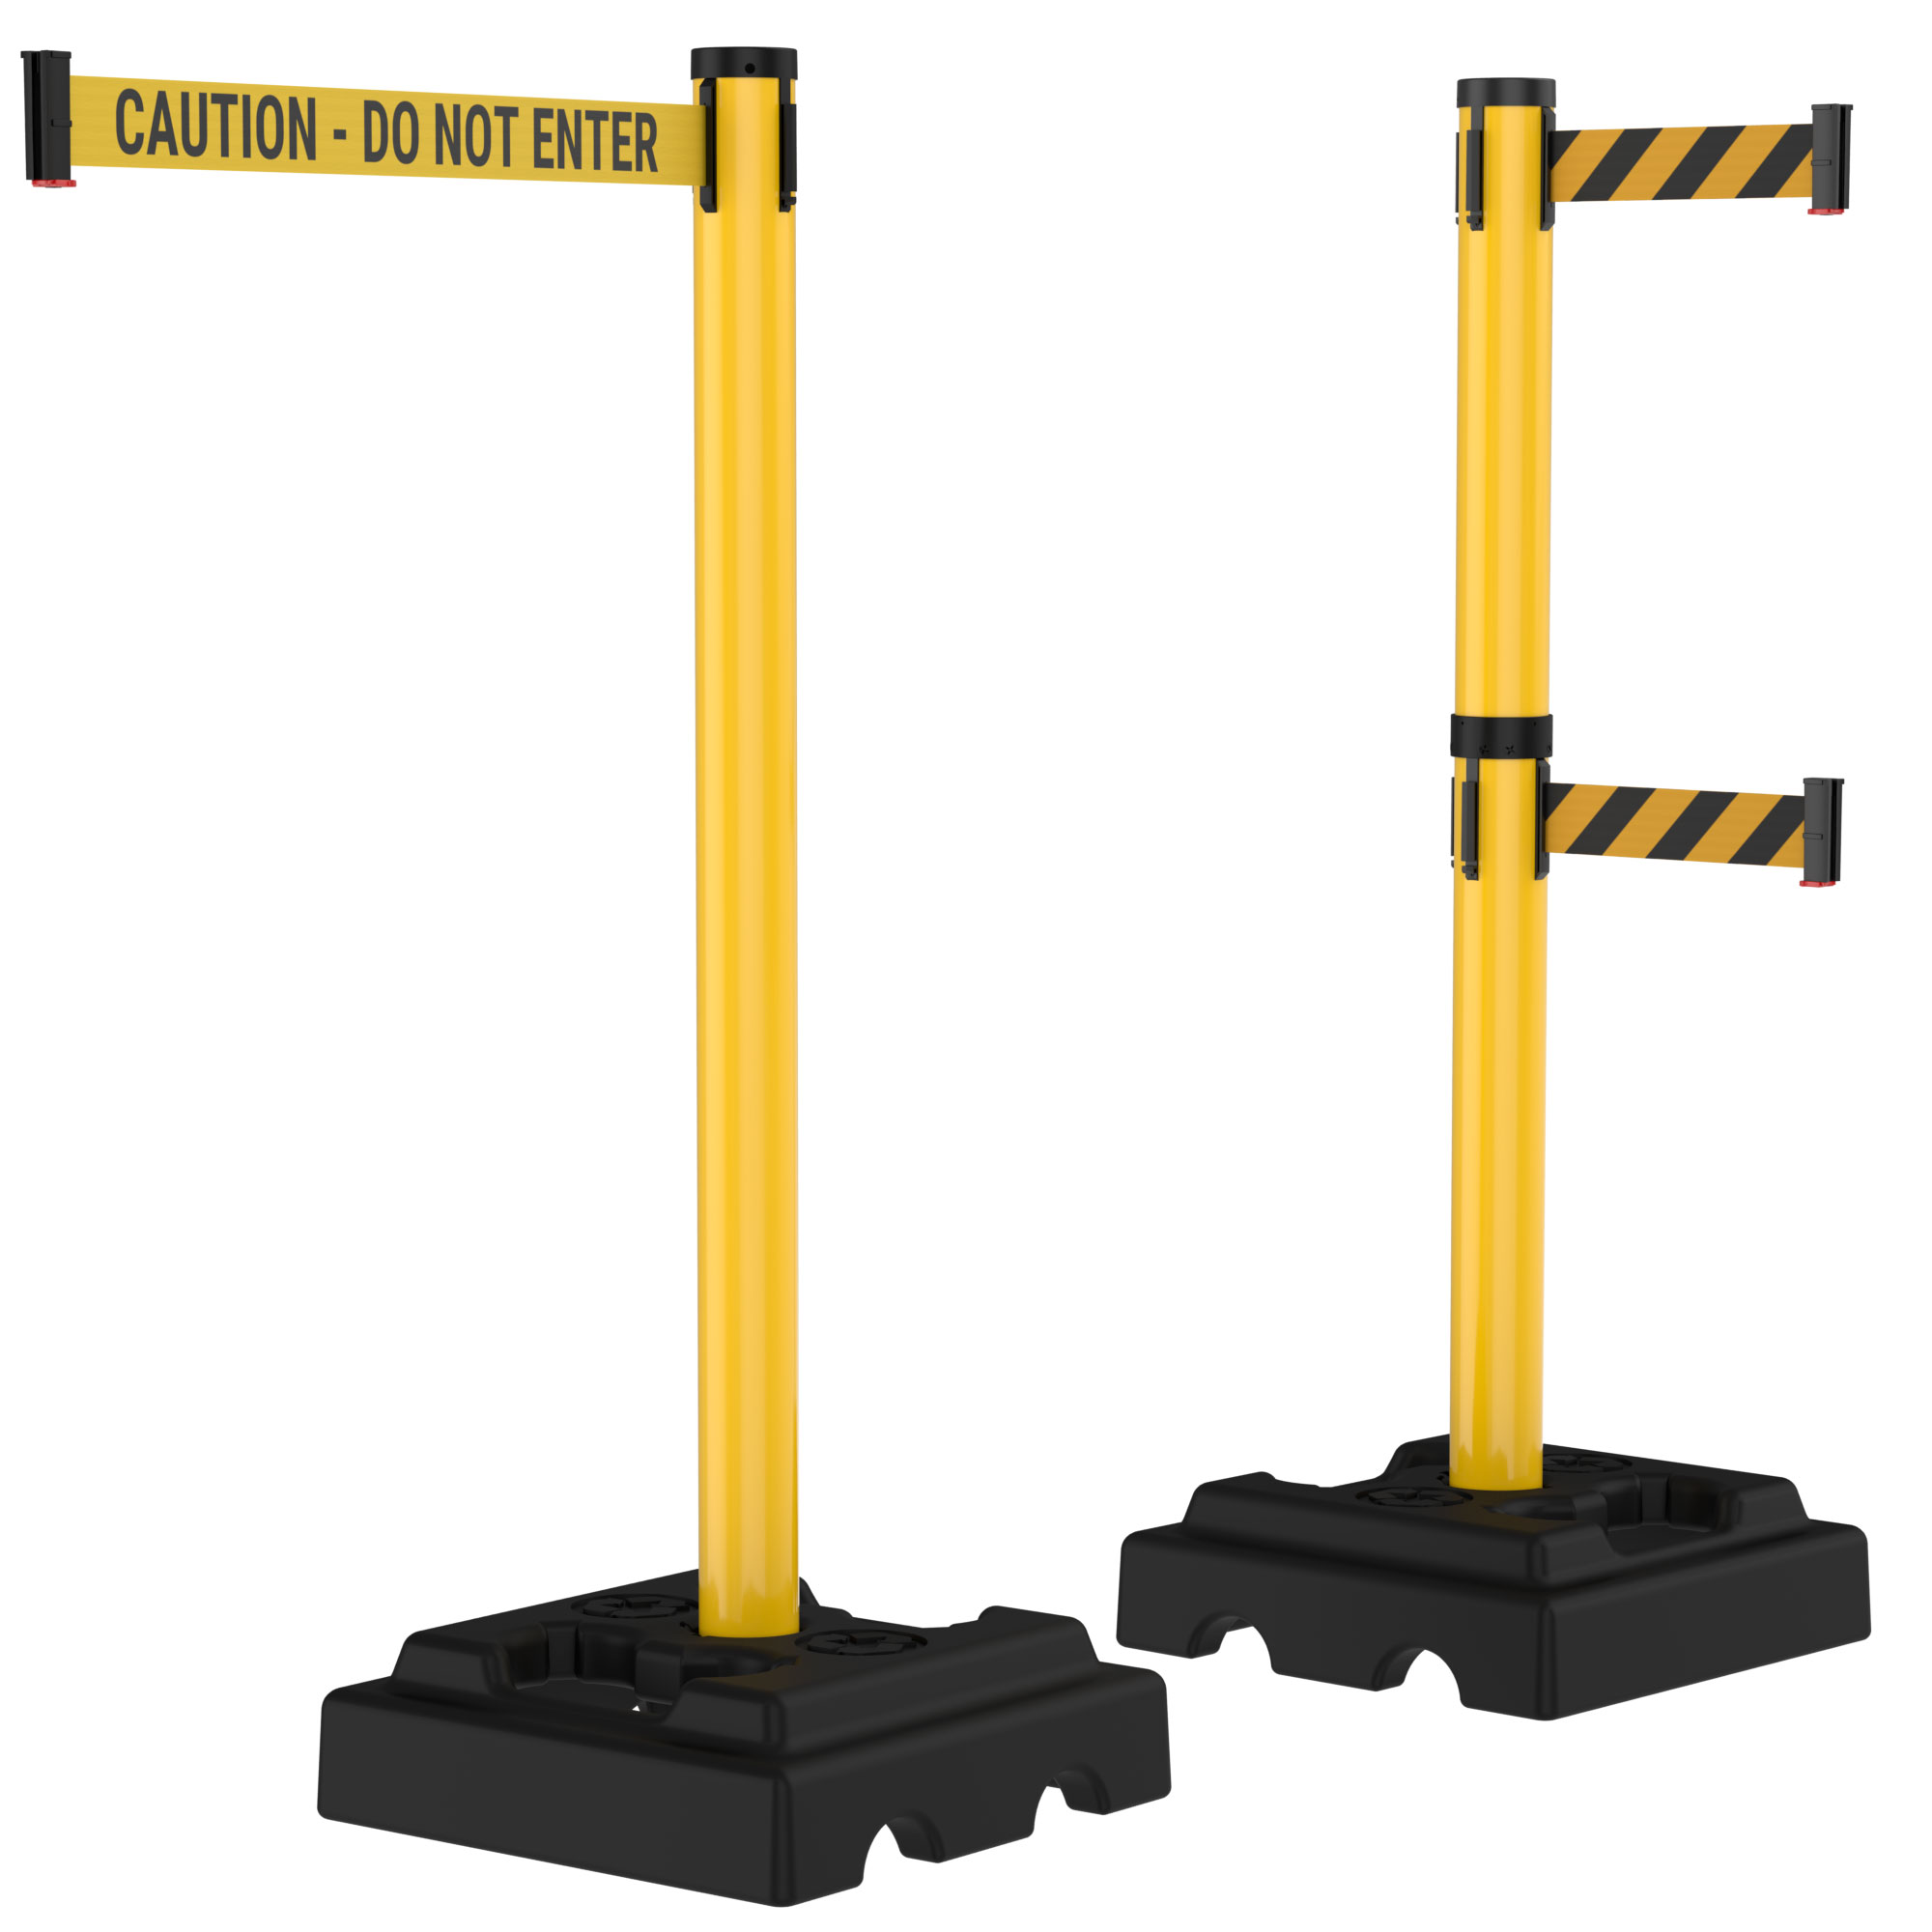 10' Retractable Belt Outdoor Utility Crowd Control Safety Stanchions